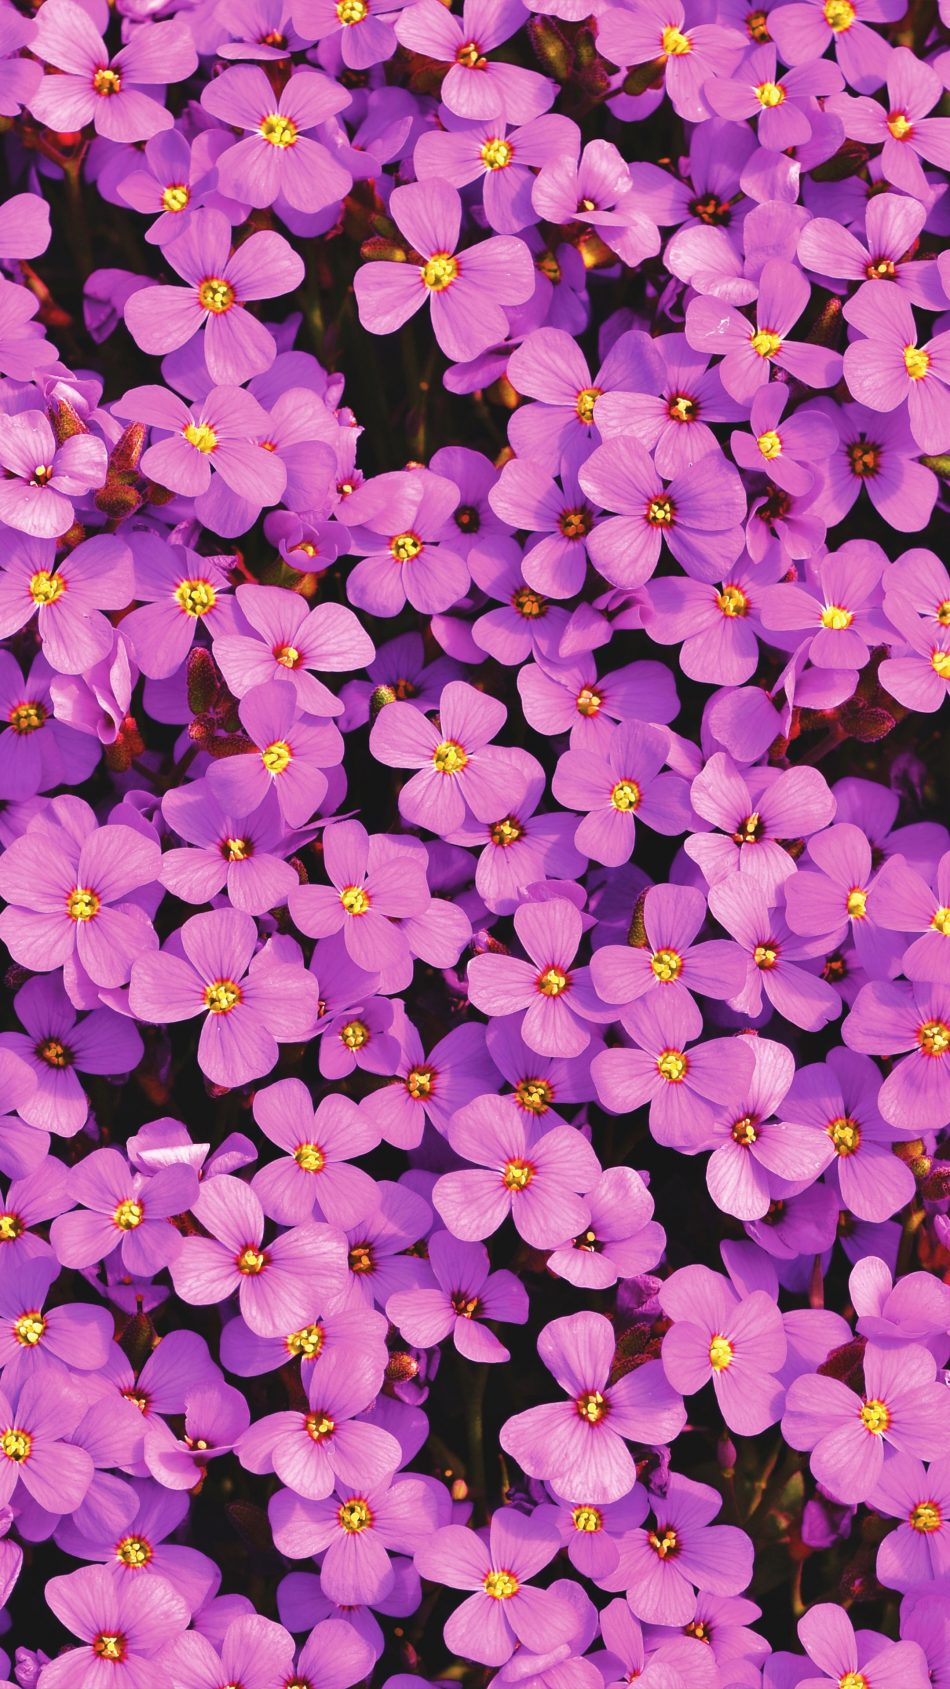 Purple Aubrieta Flowers 4K Ultra HD Mobile Wallpaper